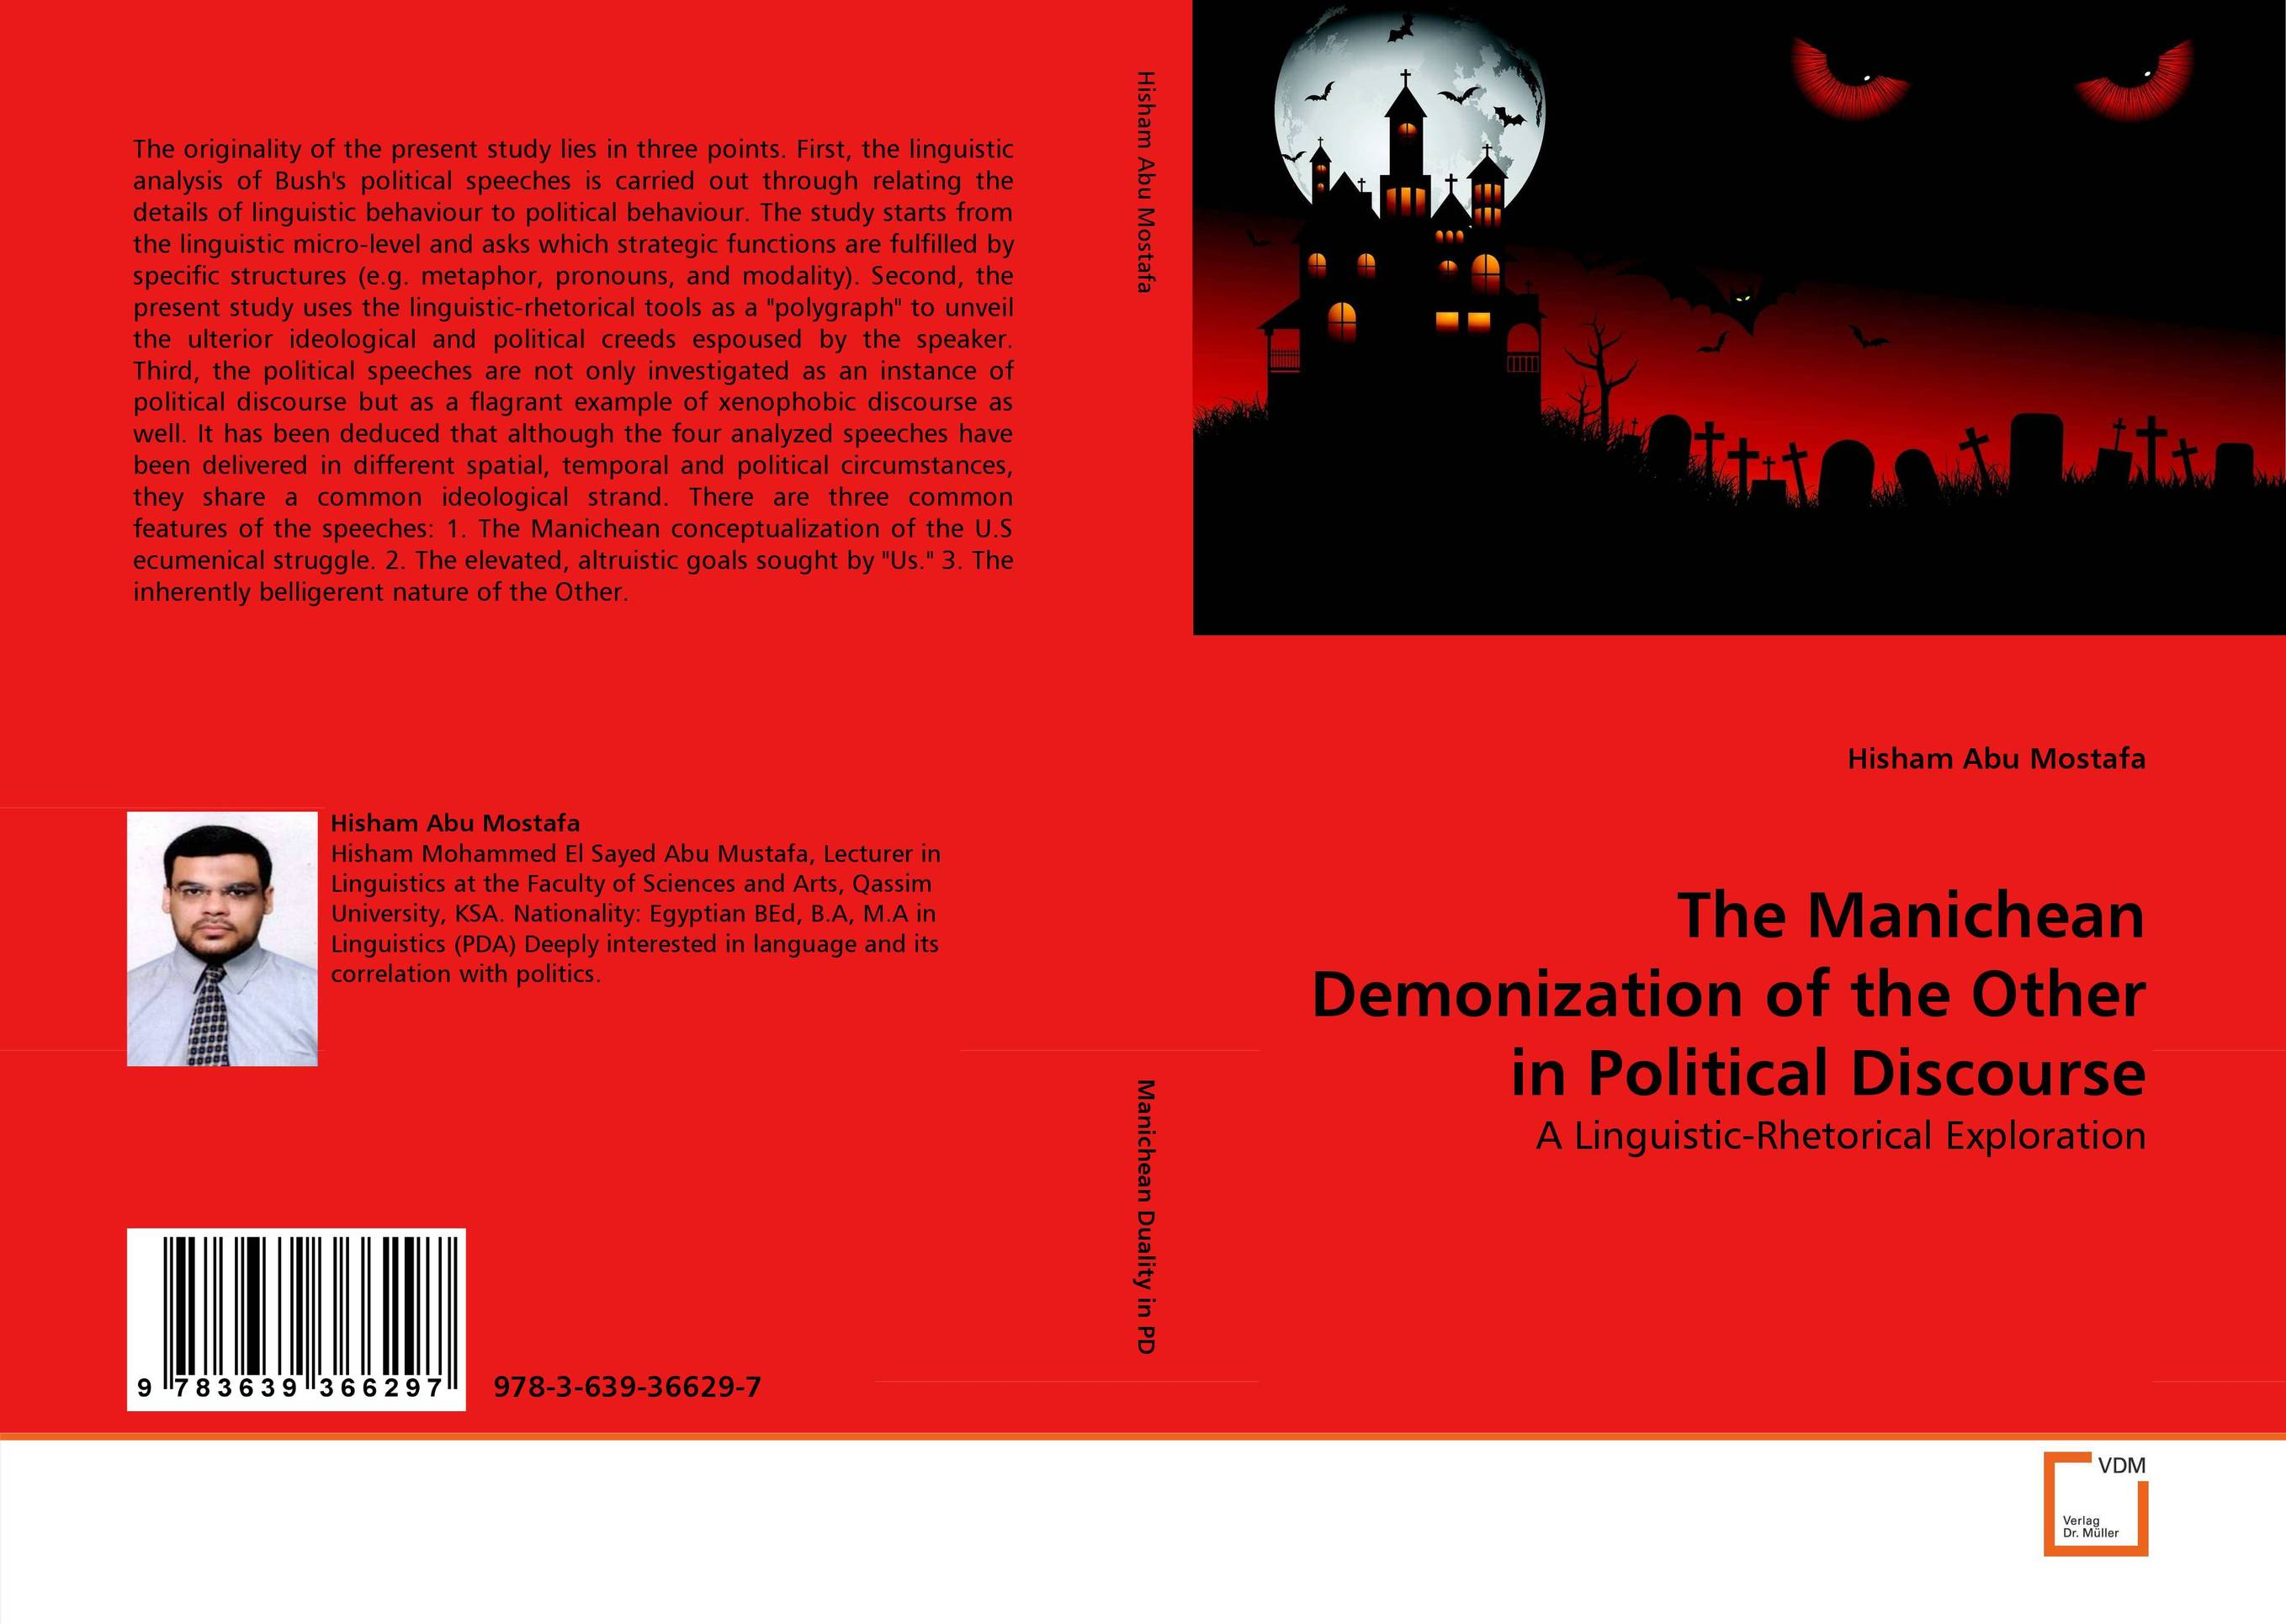 The Manichean Demonization of the Other in Political Discourse a study of the religio political thought of abdurrahman wahid